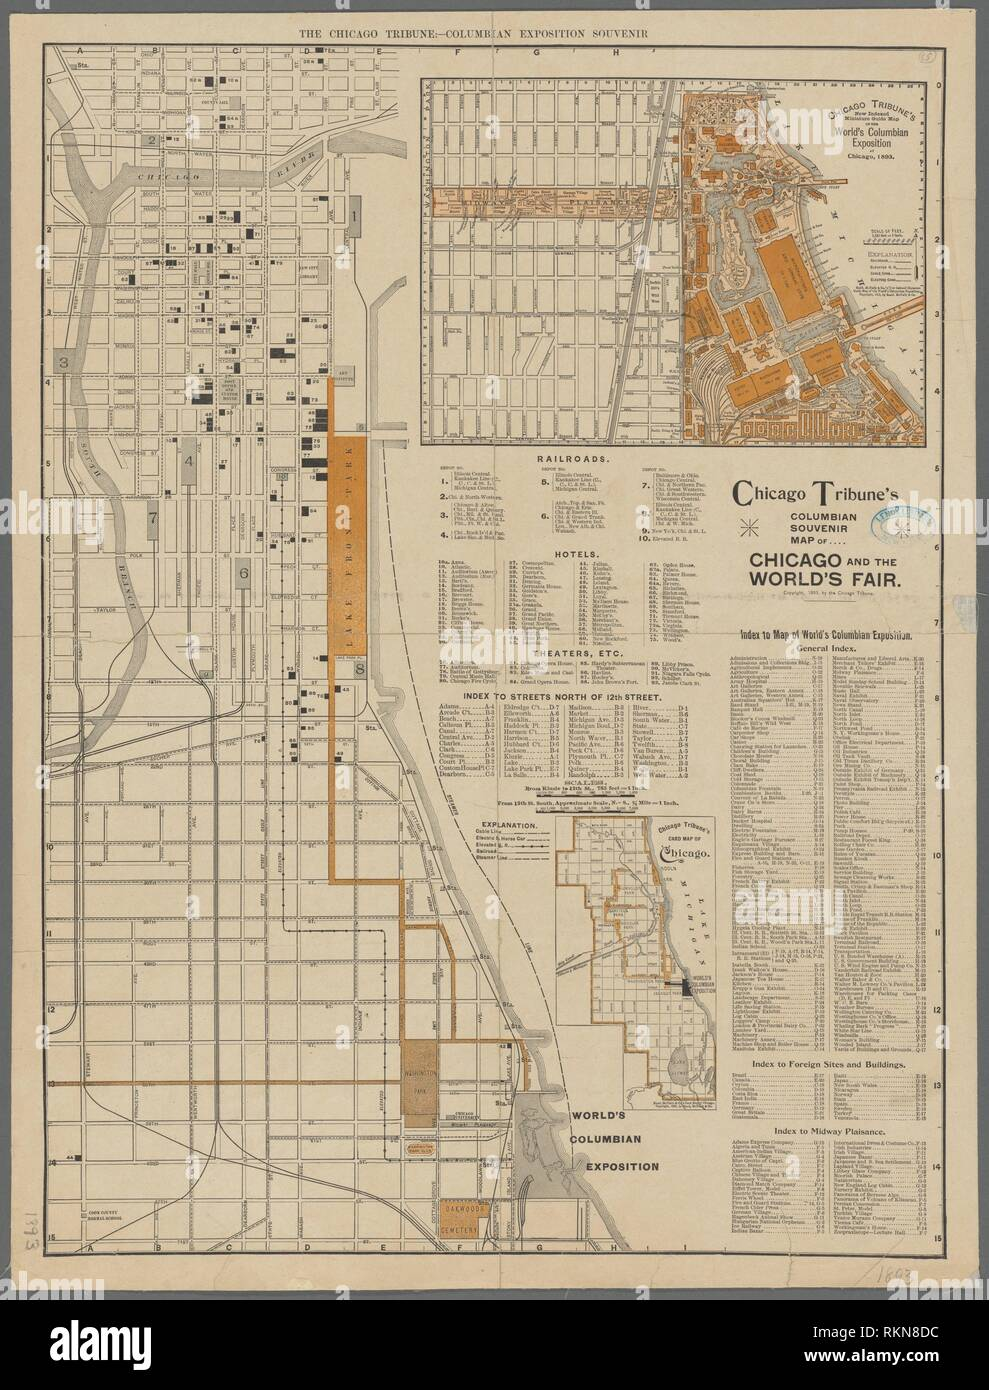 Chicago Tribune's Columbian Souvenir map of. Chicago and the ... on people map, chicago murder map, chicago area map, chicago street map with numbers, chicago highway map with names, english map, goose island chicago map, chicago ward map, chicago indianapolis map, google map, chicago cubs map, the state map, chicago crime map, chicago suburban map, chicago united states map, chicago road map, chicago aurora map, chicago texas map, ap map, chicago bay map,